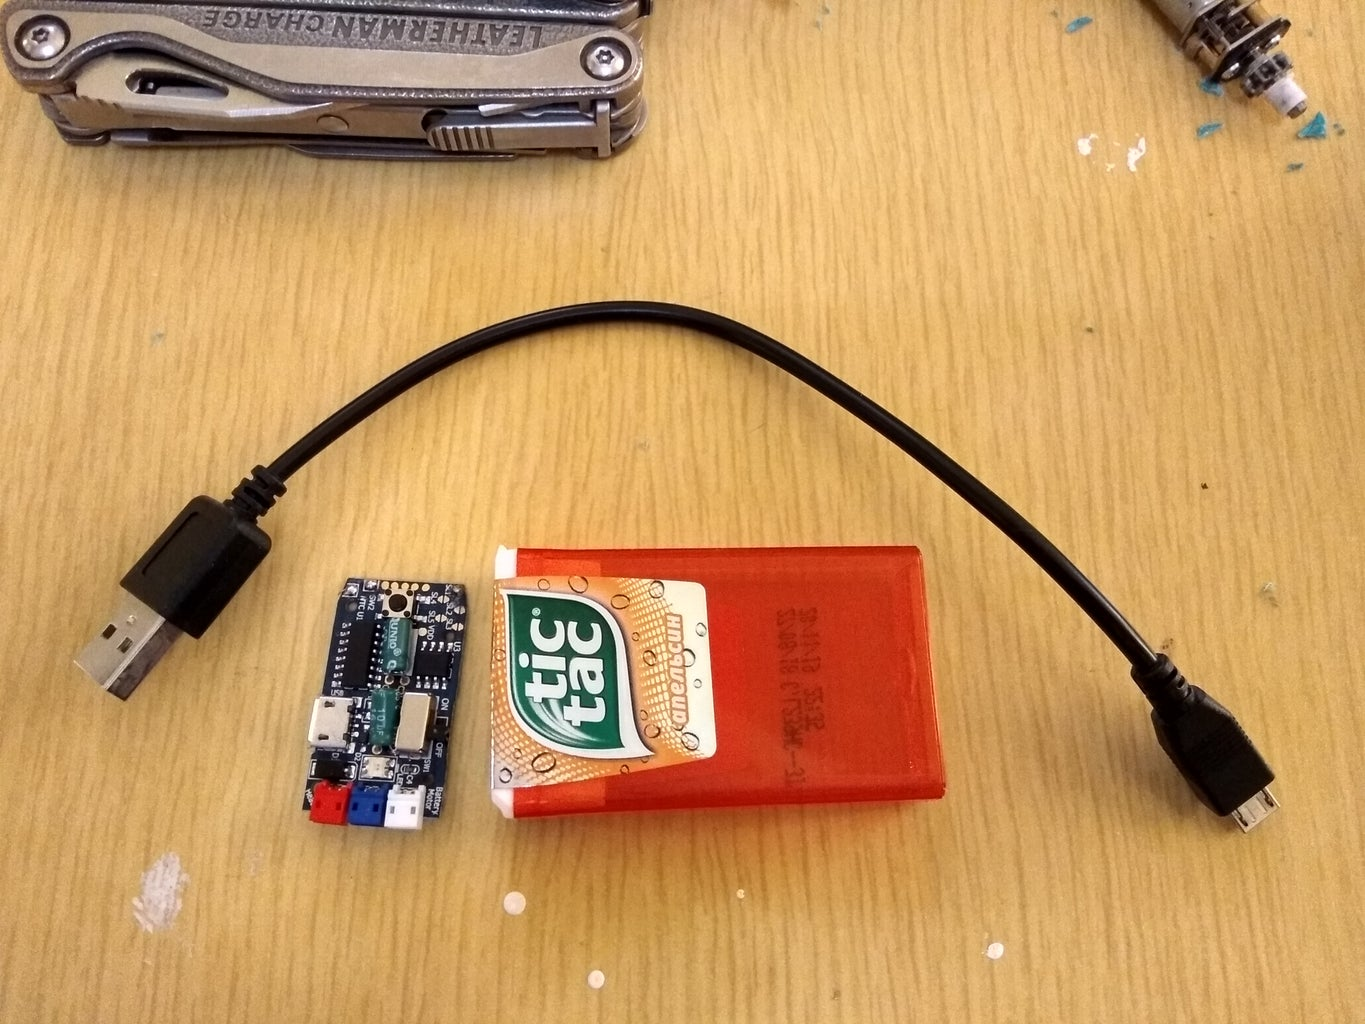 Building the Battery Charger